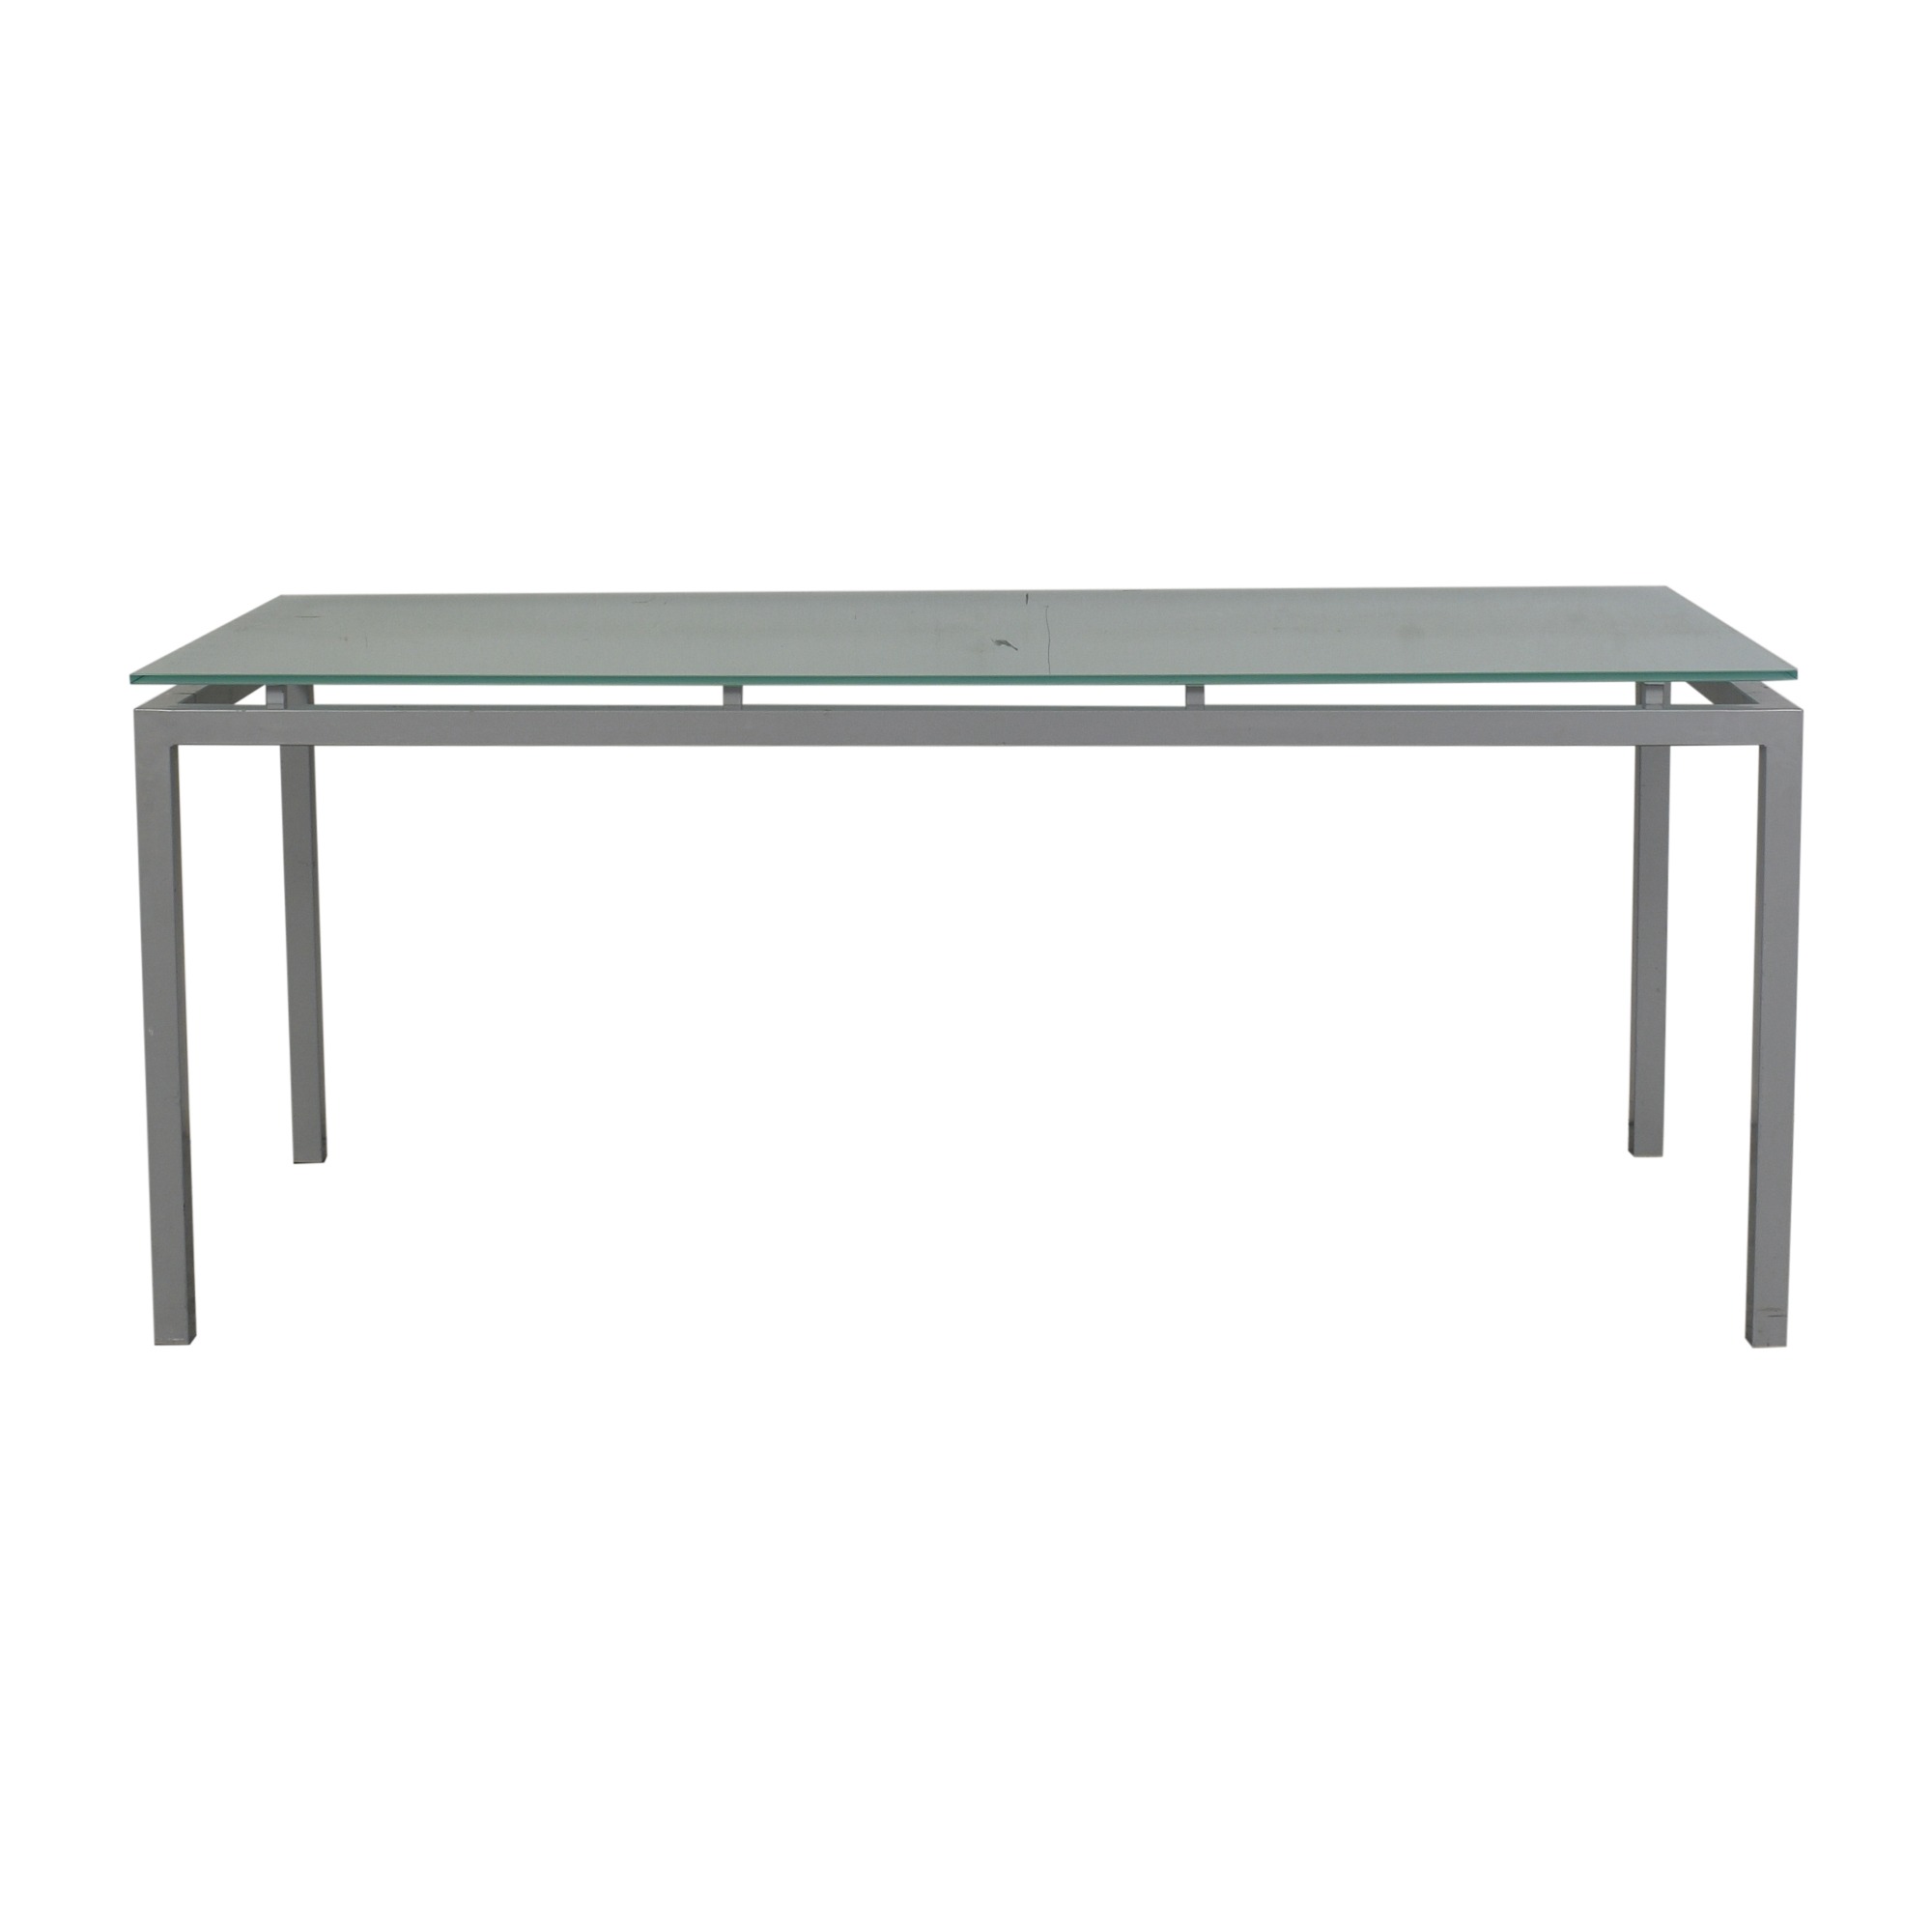 Aluminum and Glass Dinner Table